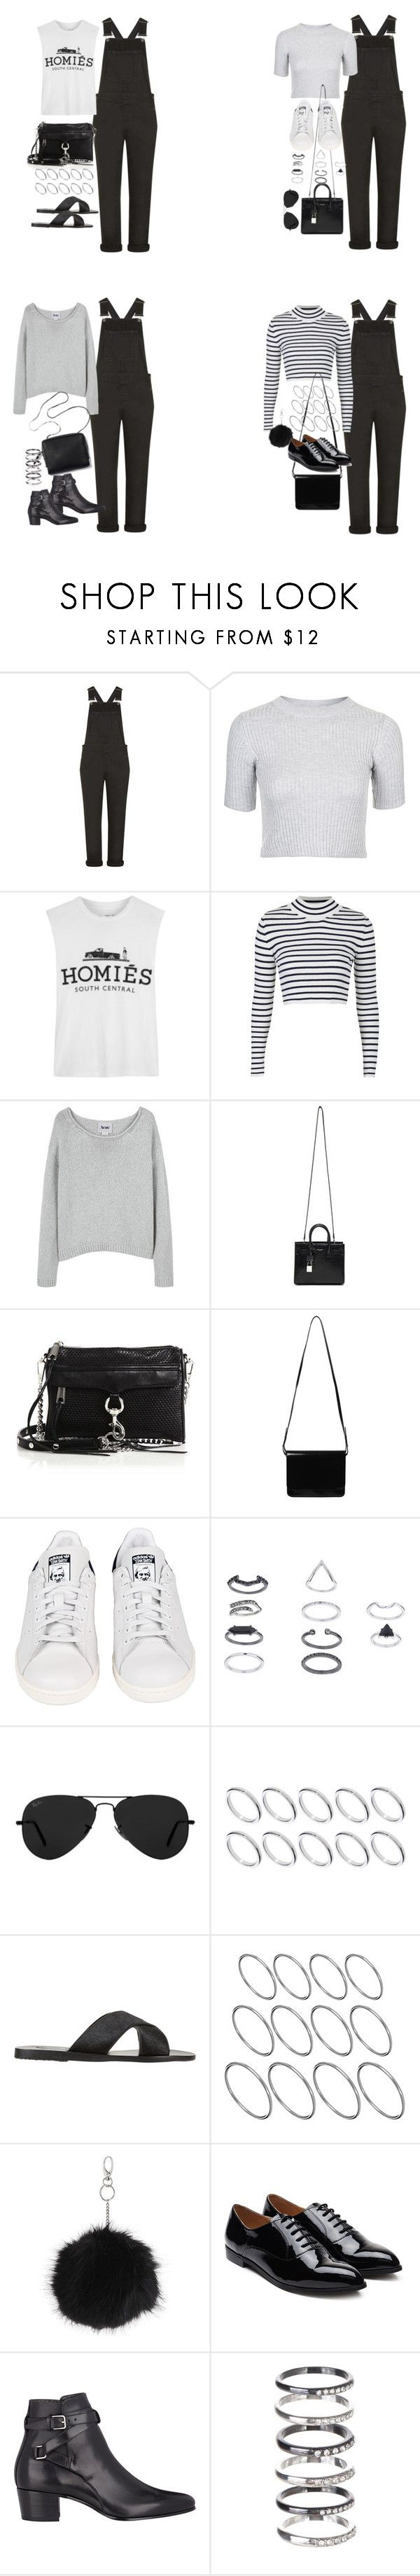 """outfits with black dungarees"" by marym96 ❤ liked on Polyvore featuring Topshop, Brian Lichtenberg, Acne Studios, Yves Saint Laurent, Rebecca Minkoff, Monki, adidas, Ray-Ban, ASOS and Ancient Greek Sandals"